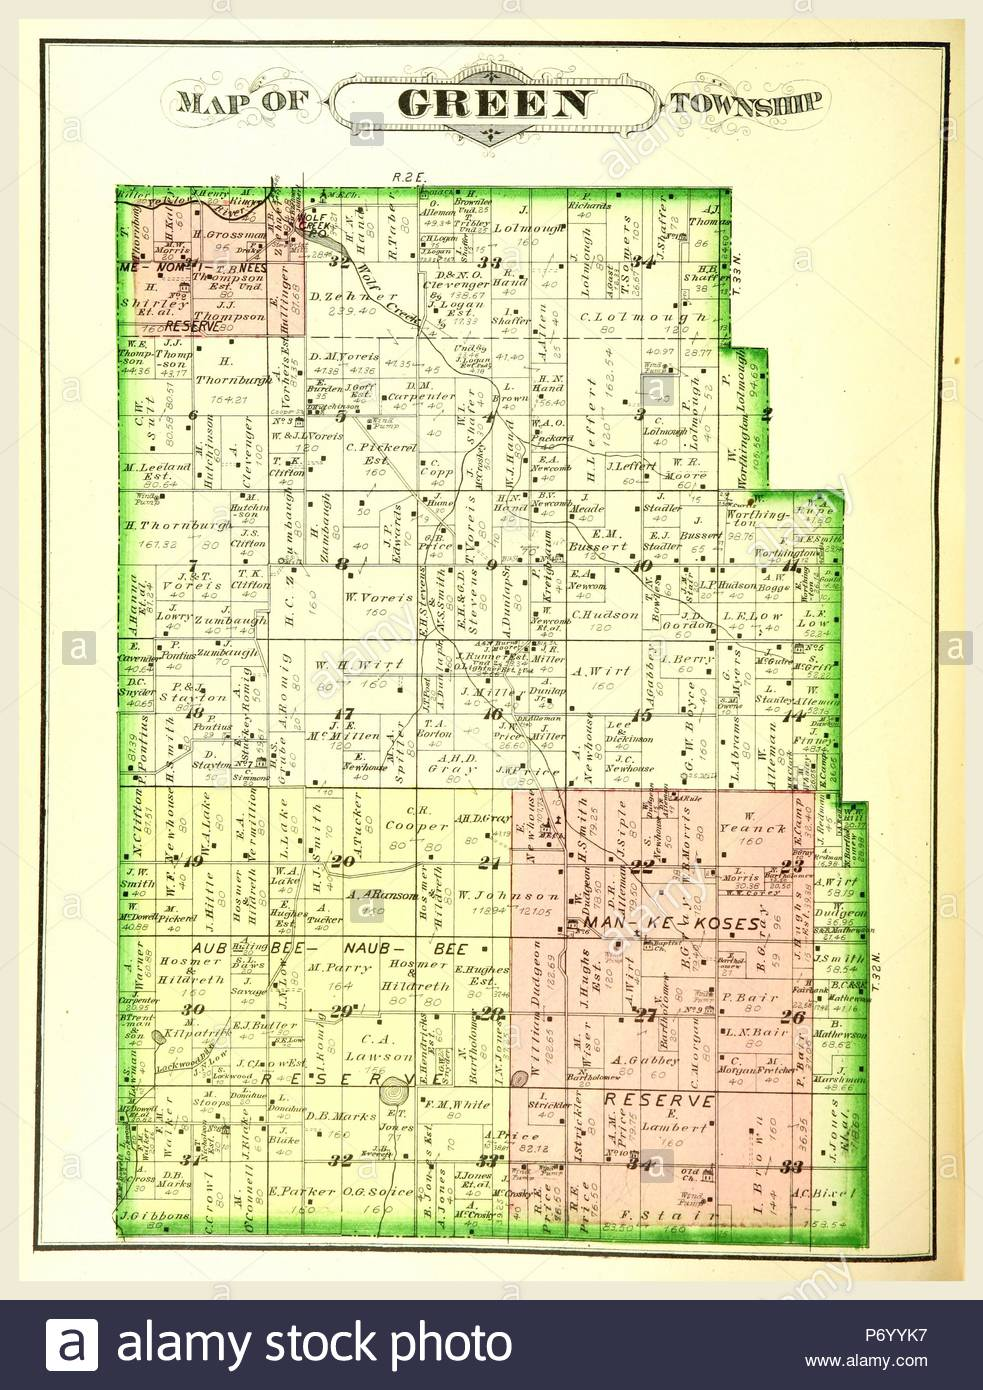 Map Of Green Township History Of Marshall County Indiana 1836 To - 1880-map-of-us